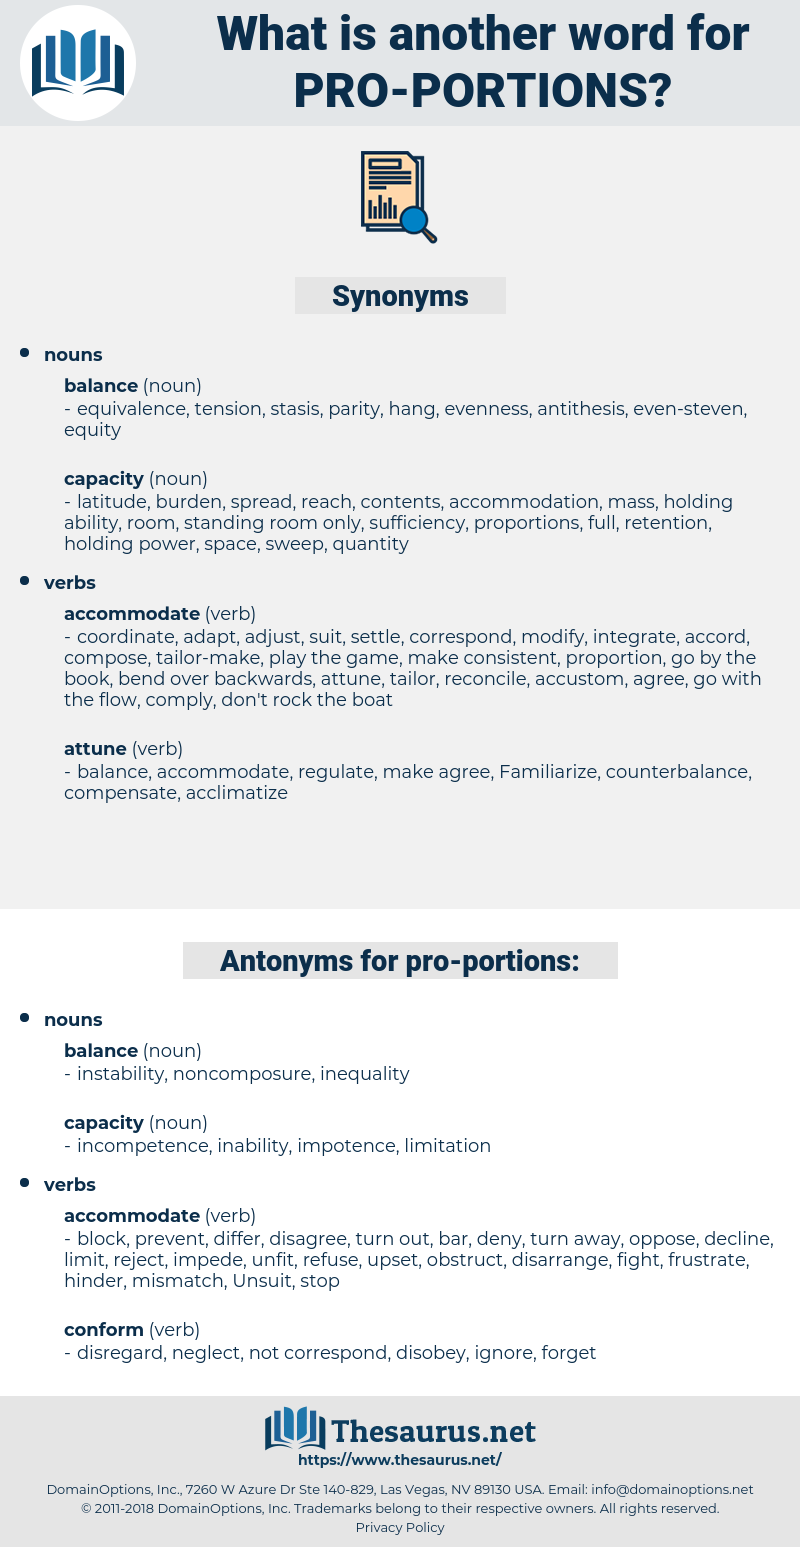 pro-portions, synonym pro-portions, another word for pro-portions, words like pro-portions, thesaurus pro-portions